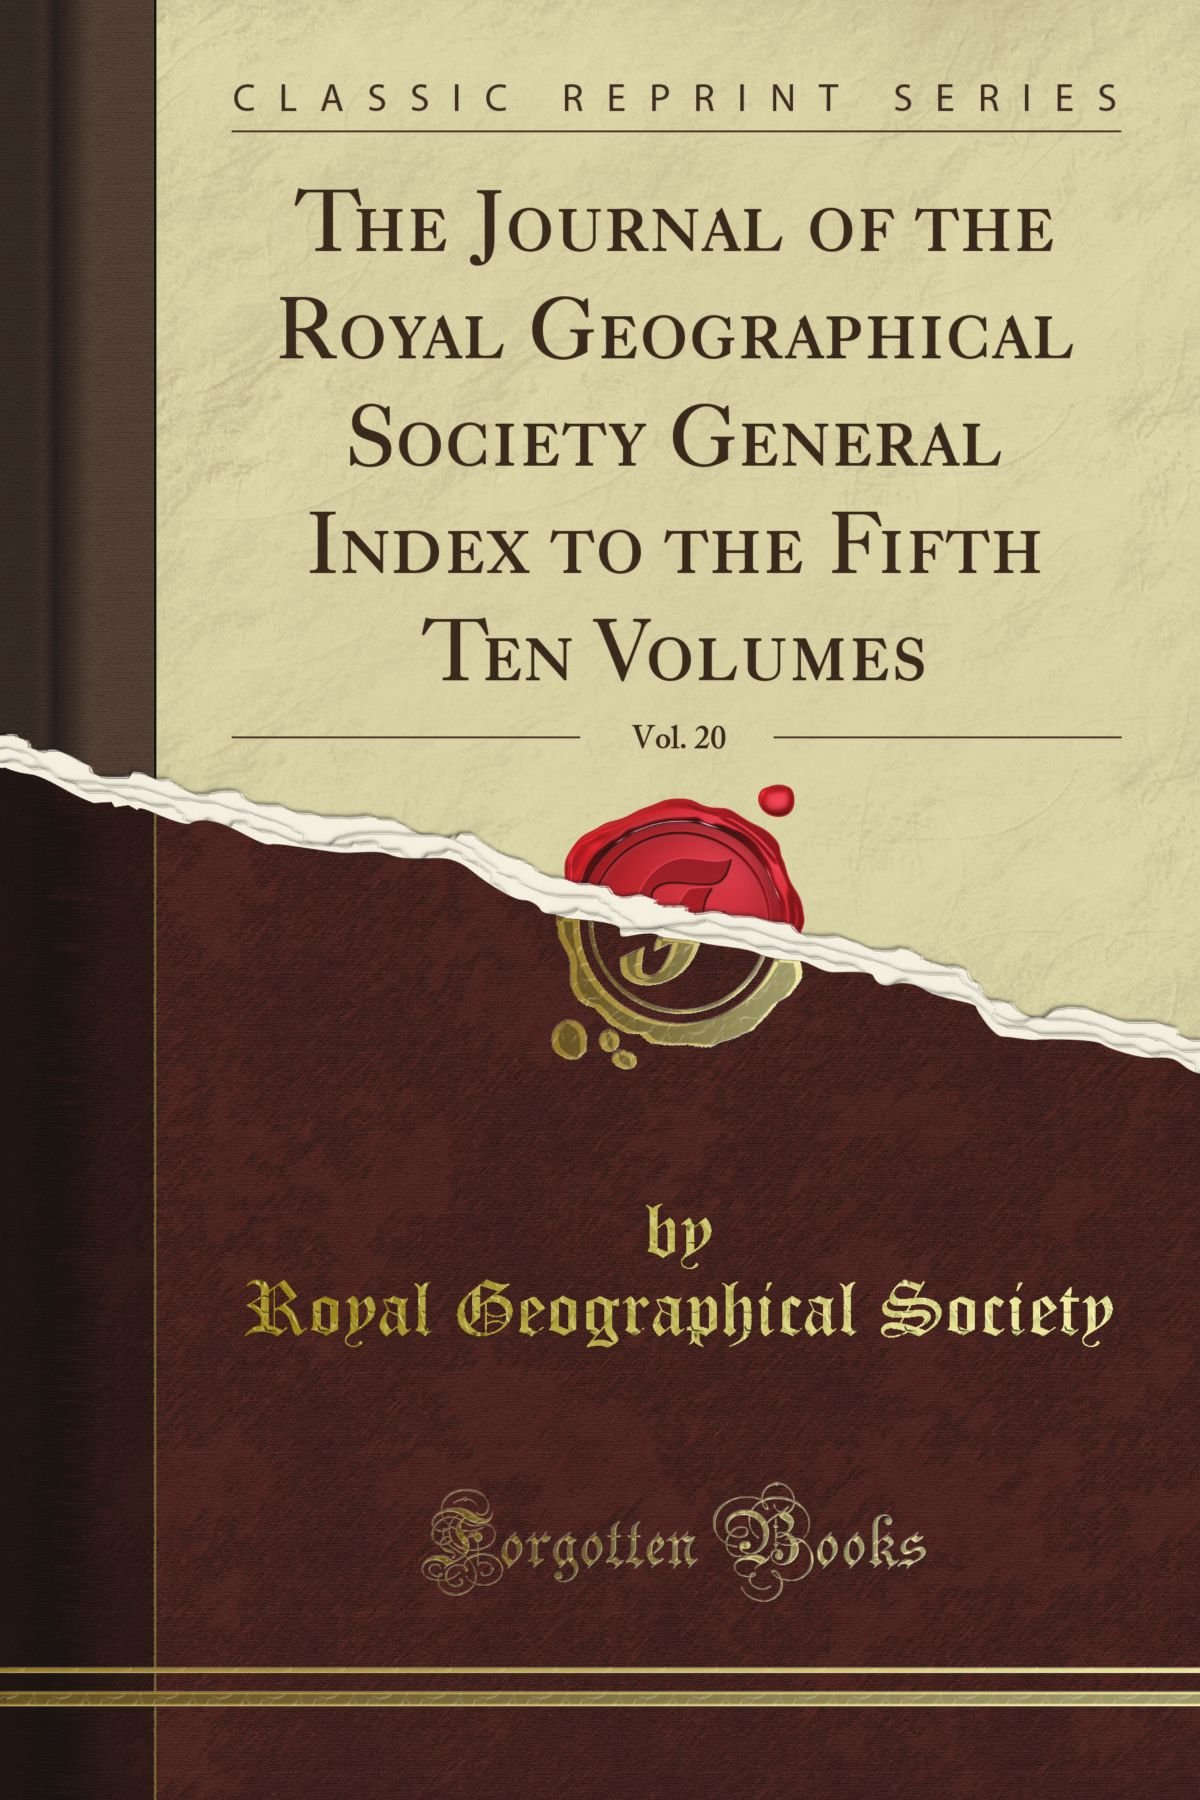 Download The Journal of the Royal Geographical Society General Index to the Fifth Ten Volumes, Vol. 20 (Classic Reprint) ebook